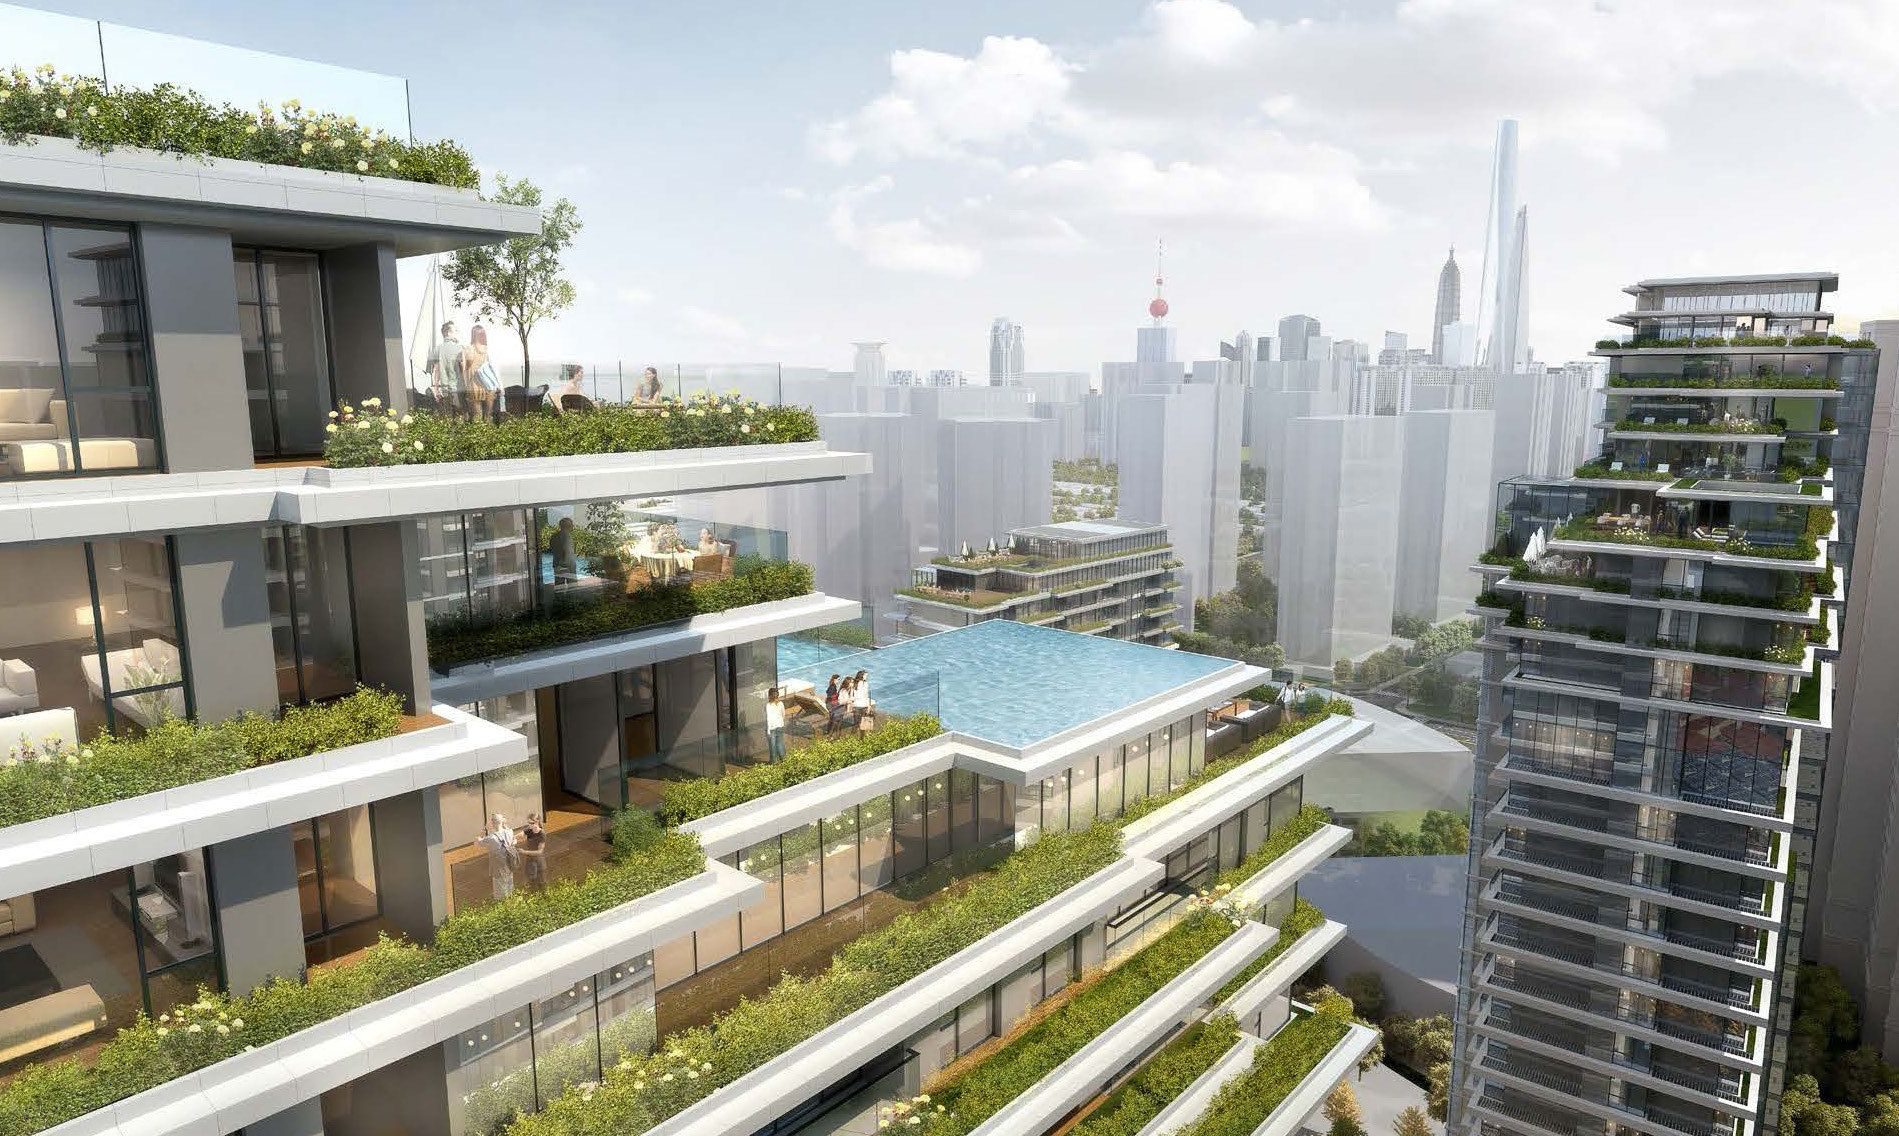 CITIC Pacific High-Rise Development in Shanghai Beautifully Combines Natural With The Artificial  | ArchDaily